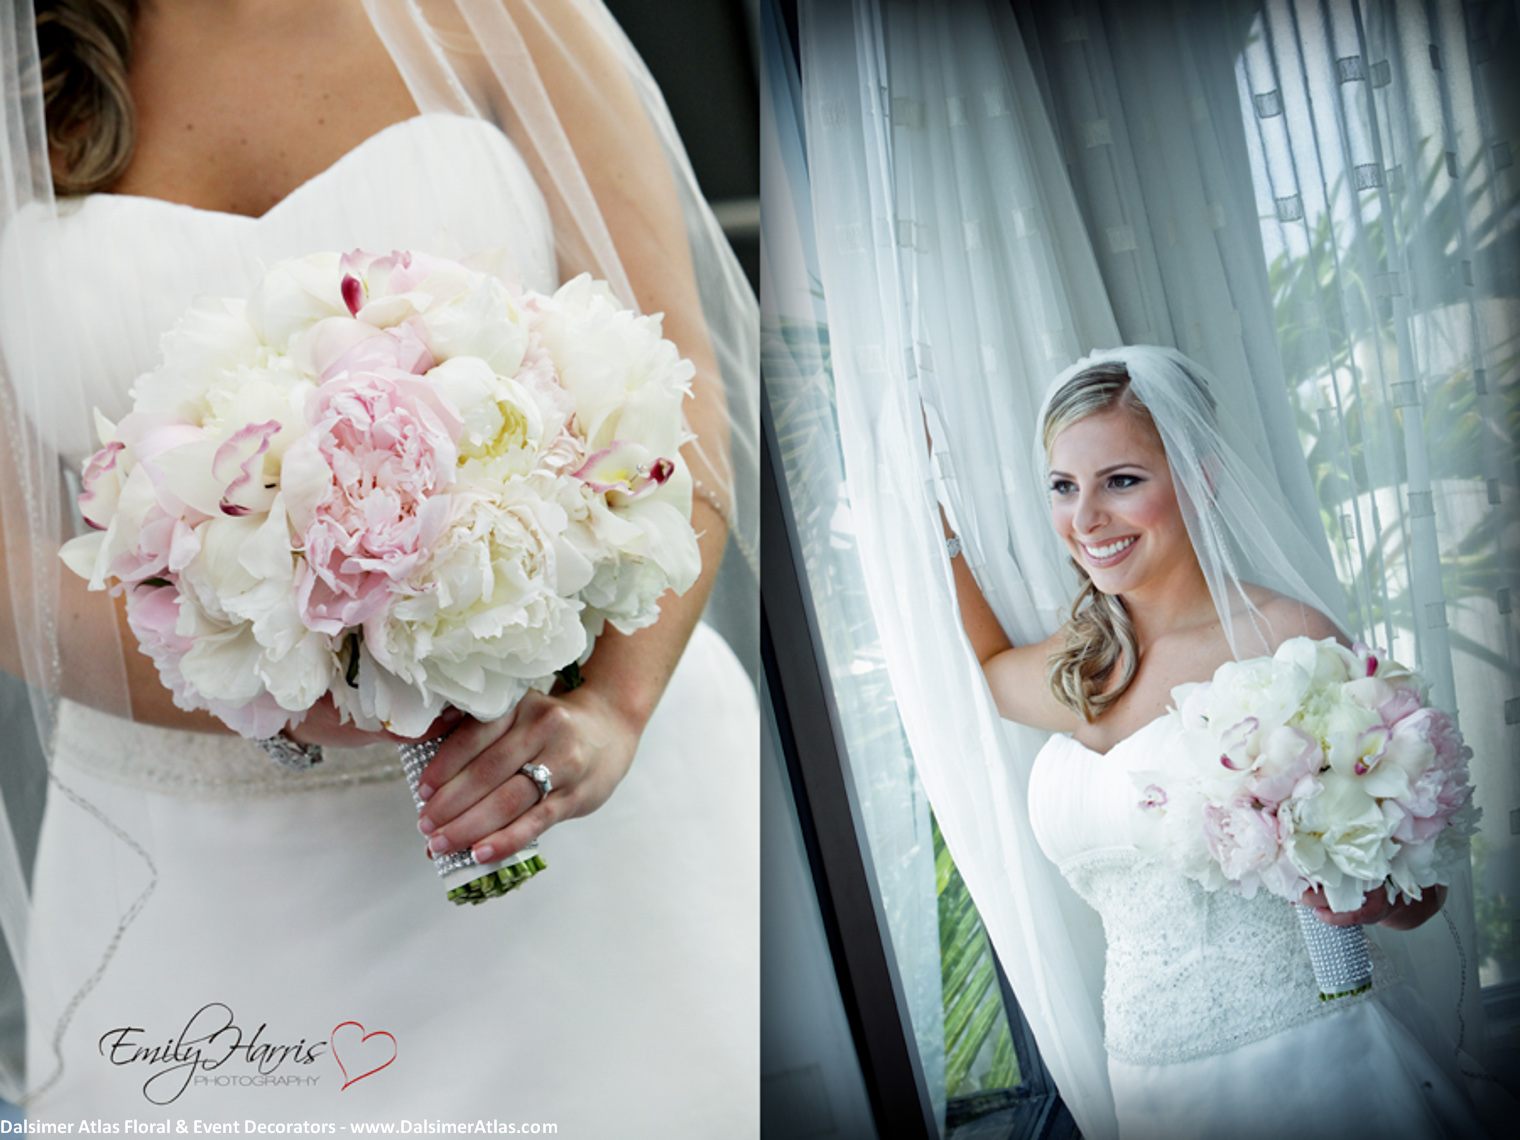 Bridal Bouquet White Peonies Pink Peonies White Orchids